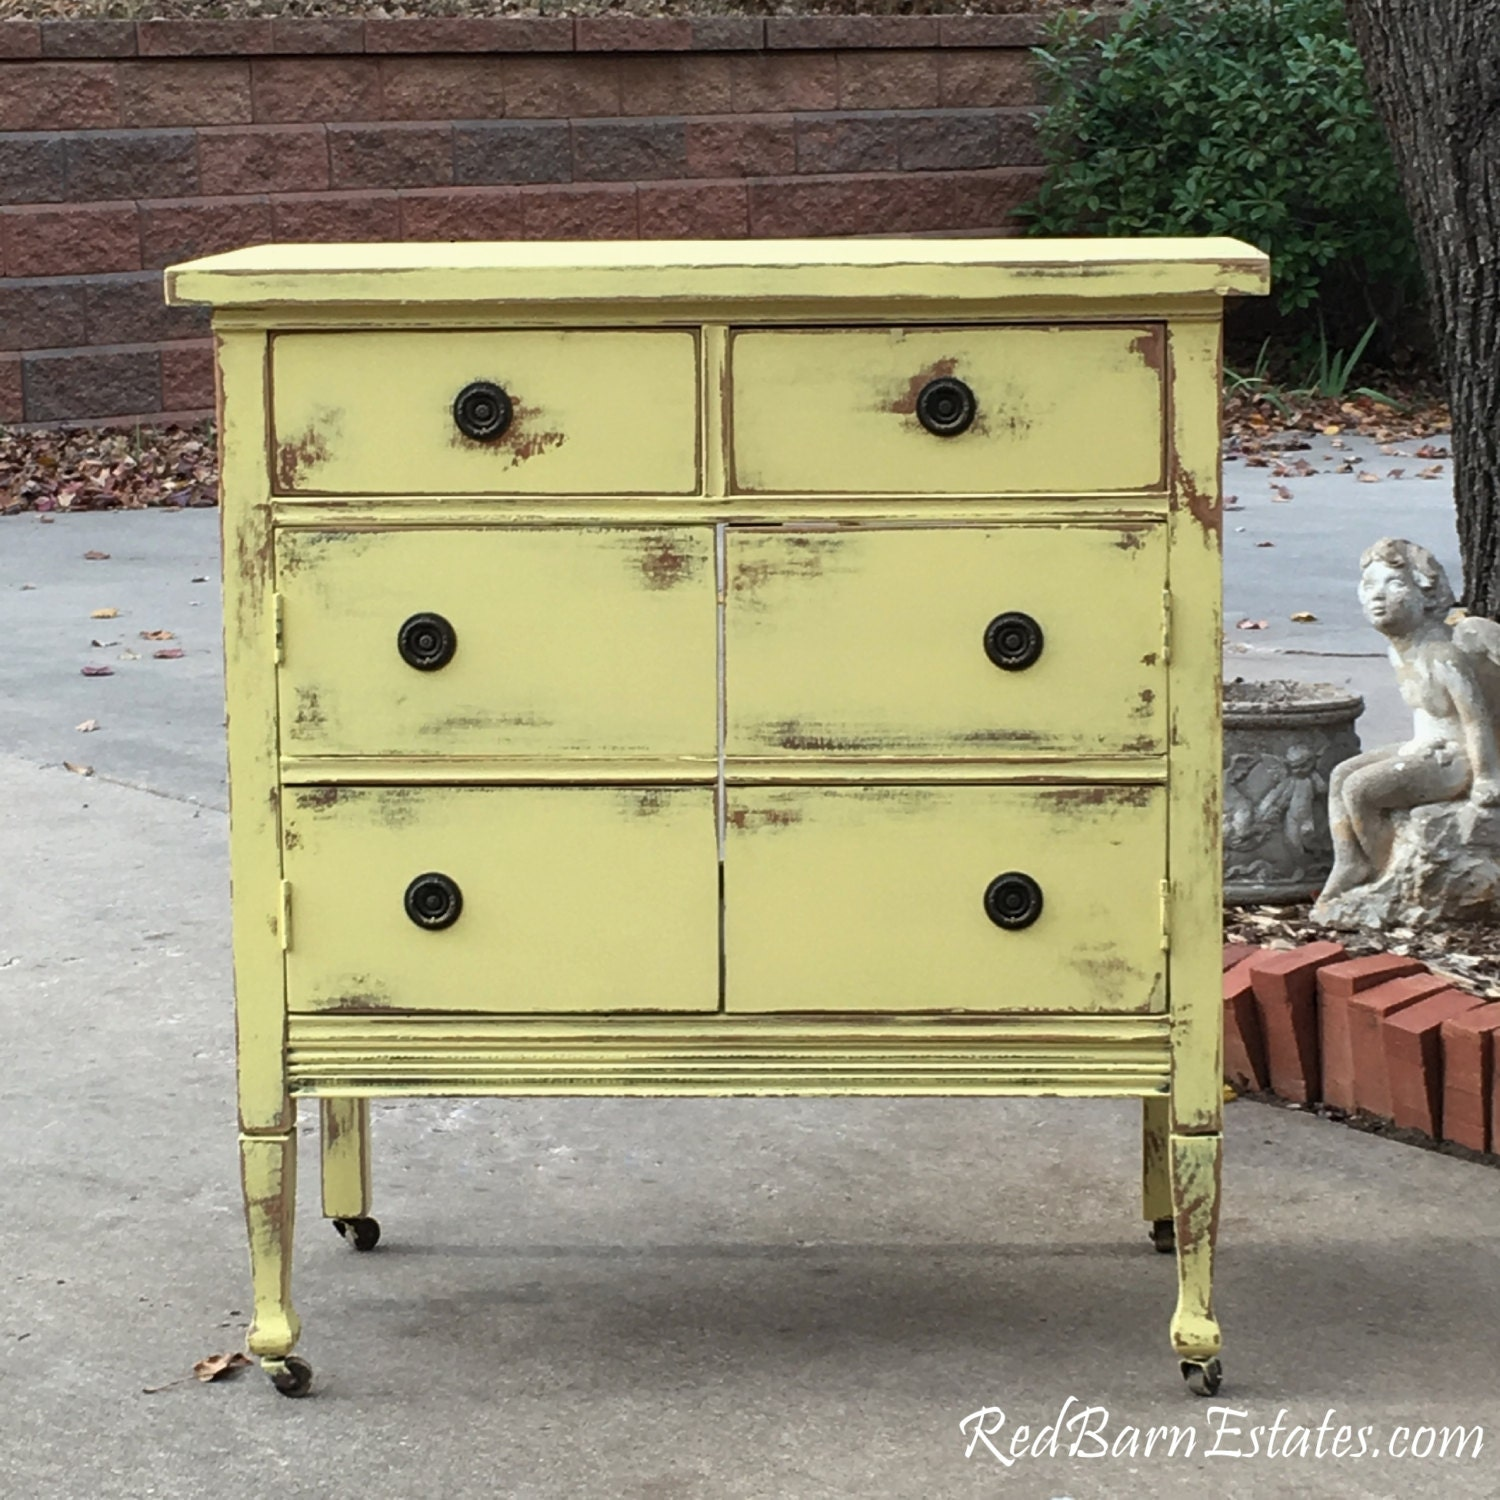 Antique Bathroom Vanity Cabinet: Antique Dresser BATH VANITY CABINET We Custom Convert From An